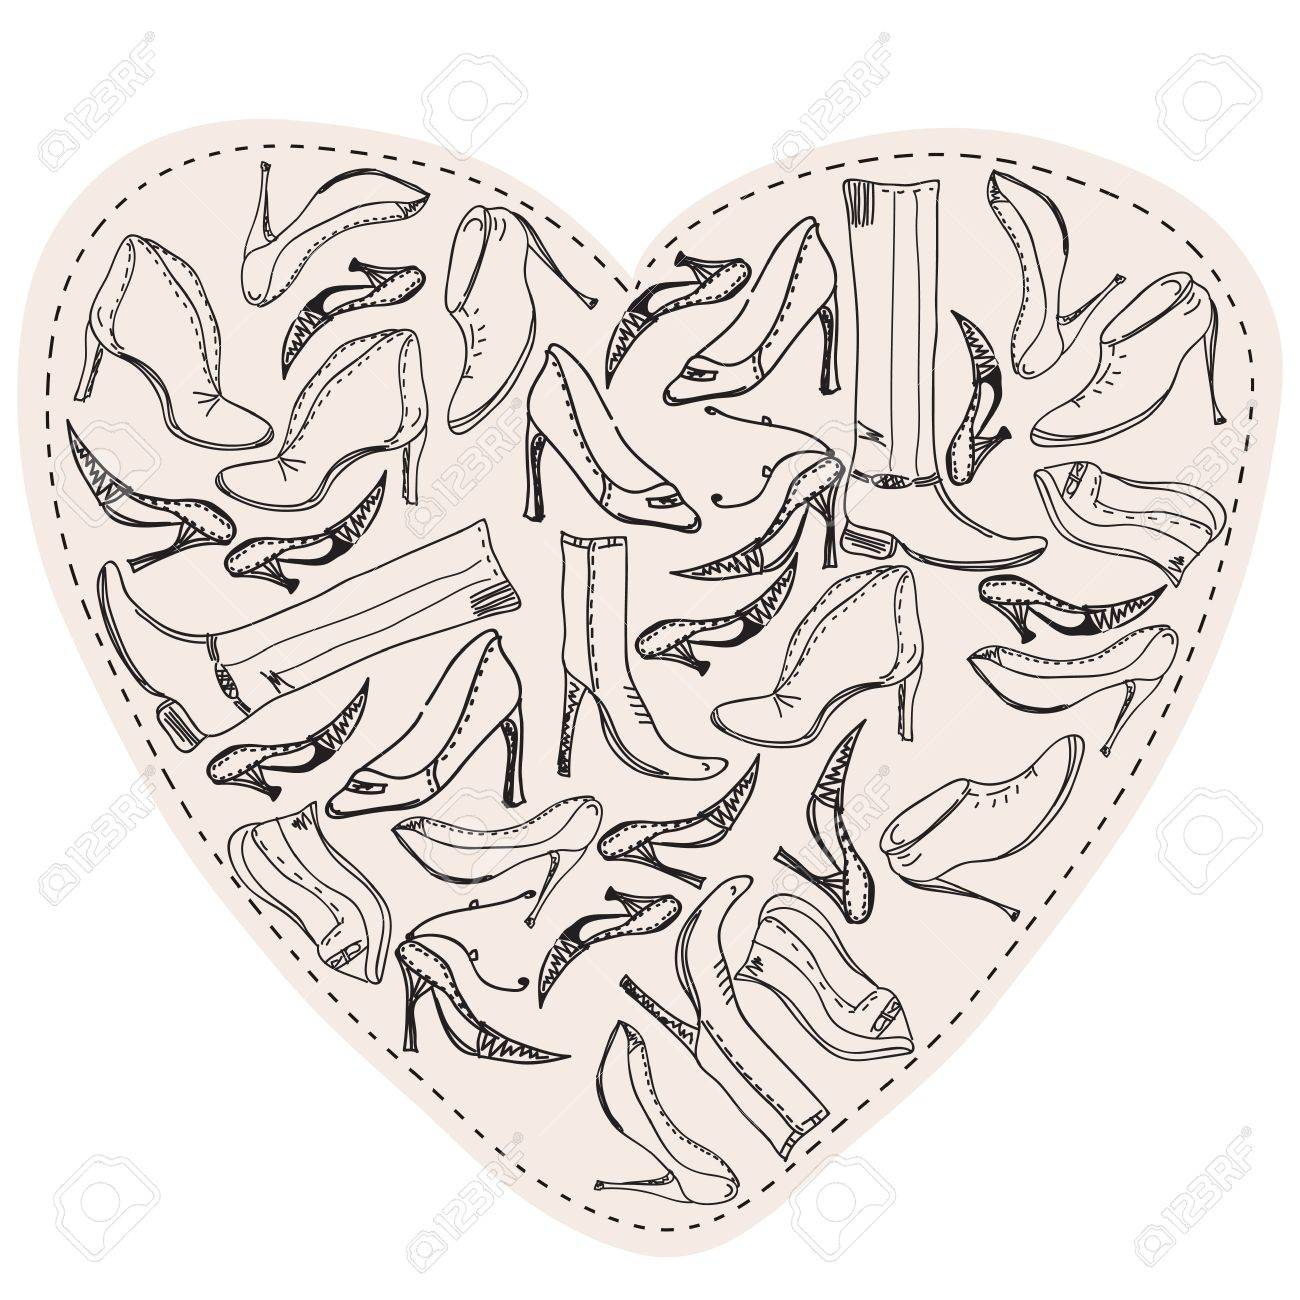 Shoes in the form of heart sketch Stock Vector - 9213215